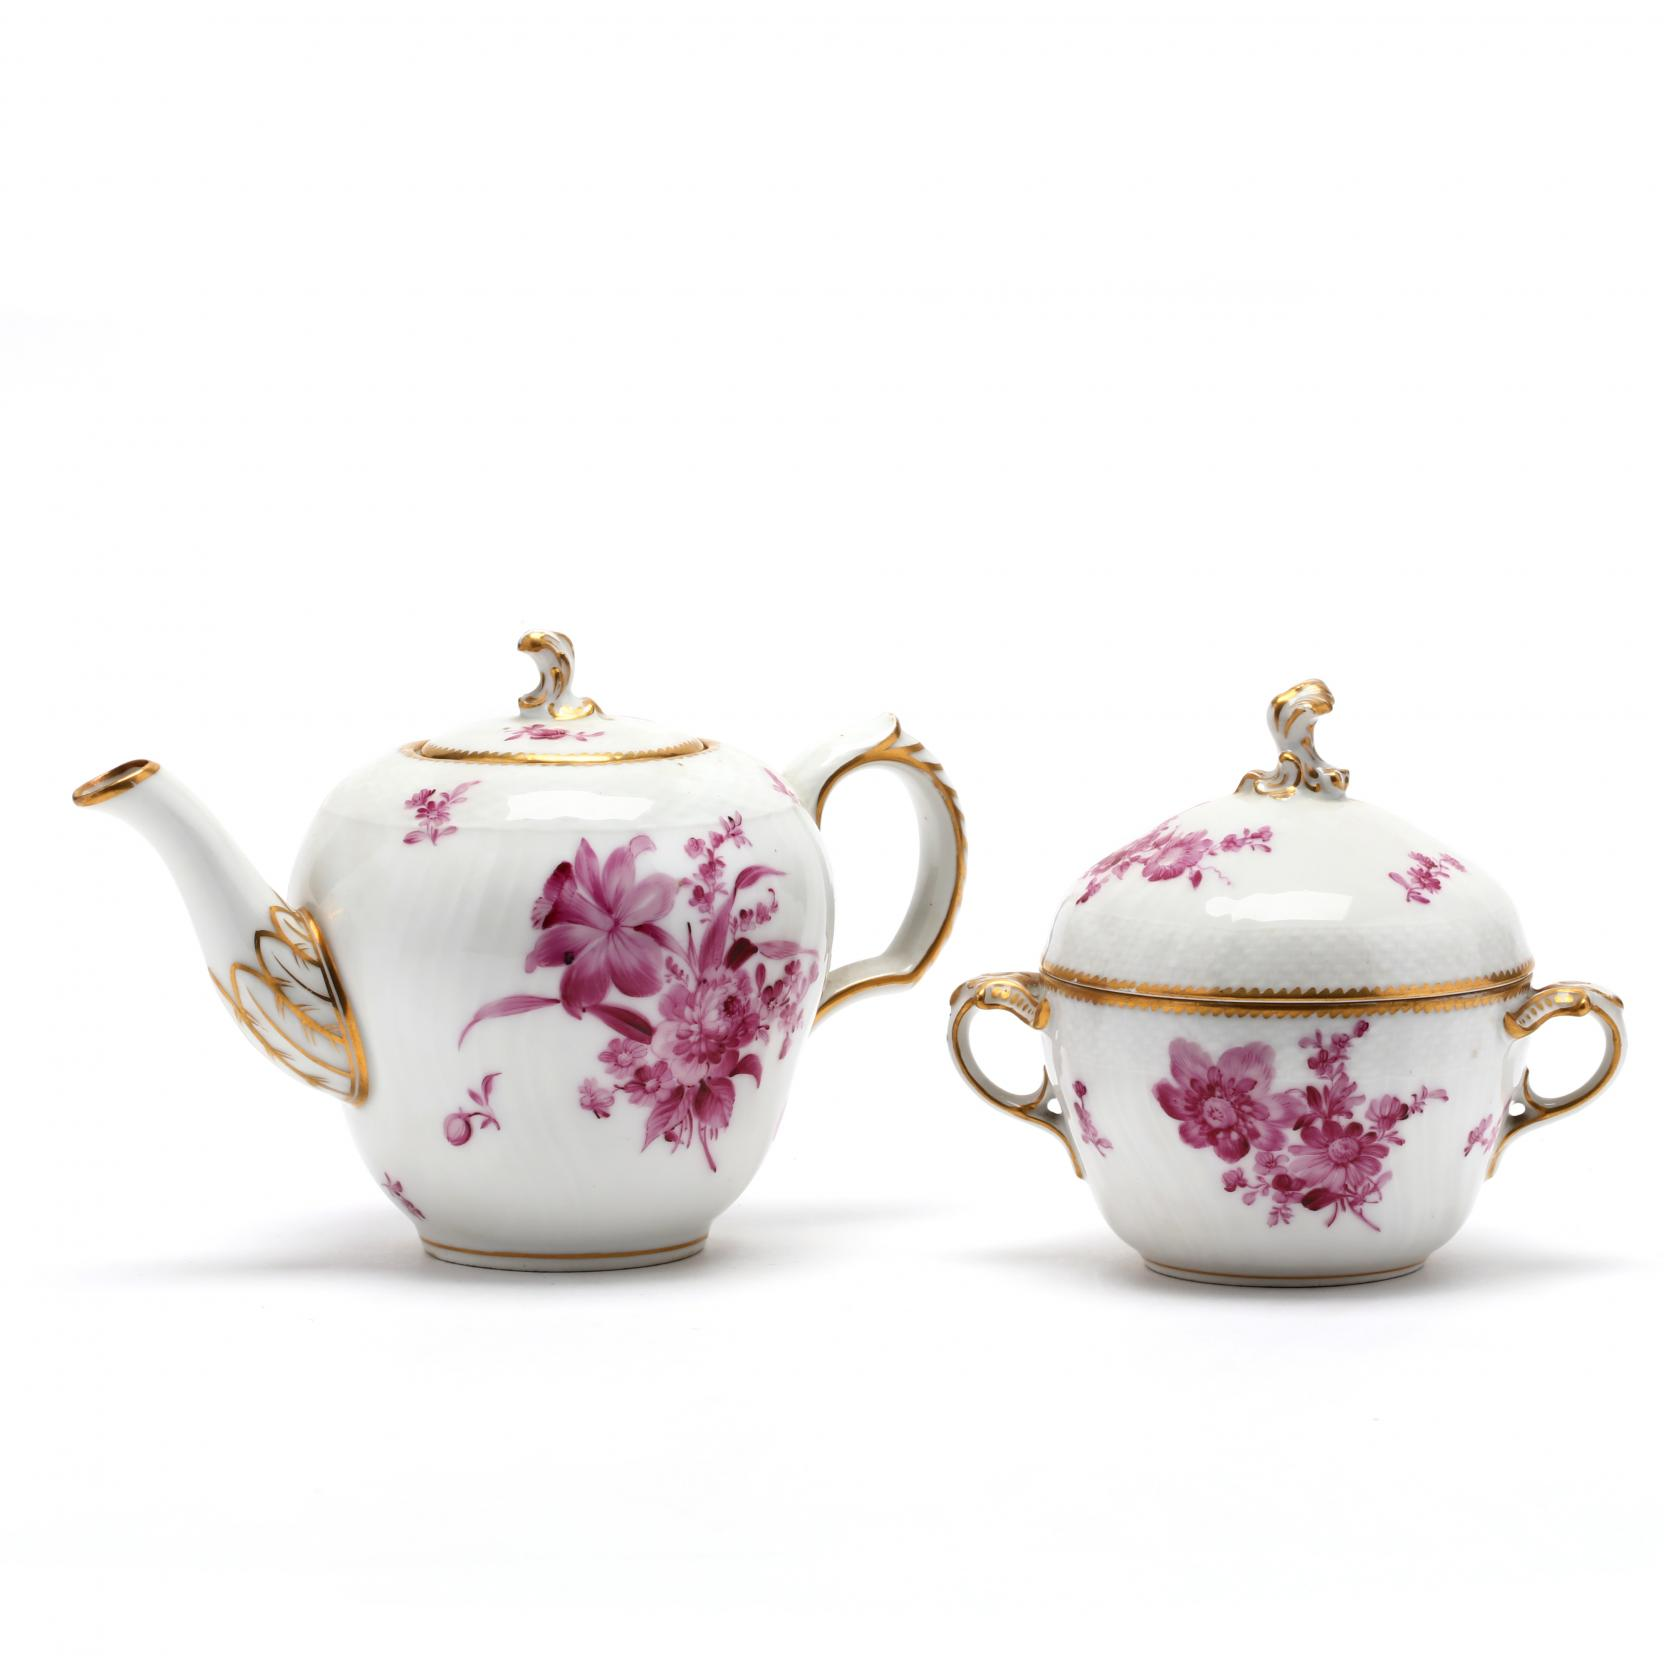 two-pieces-of-antique-royal-copenhagen-porcelain